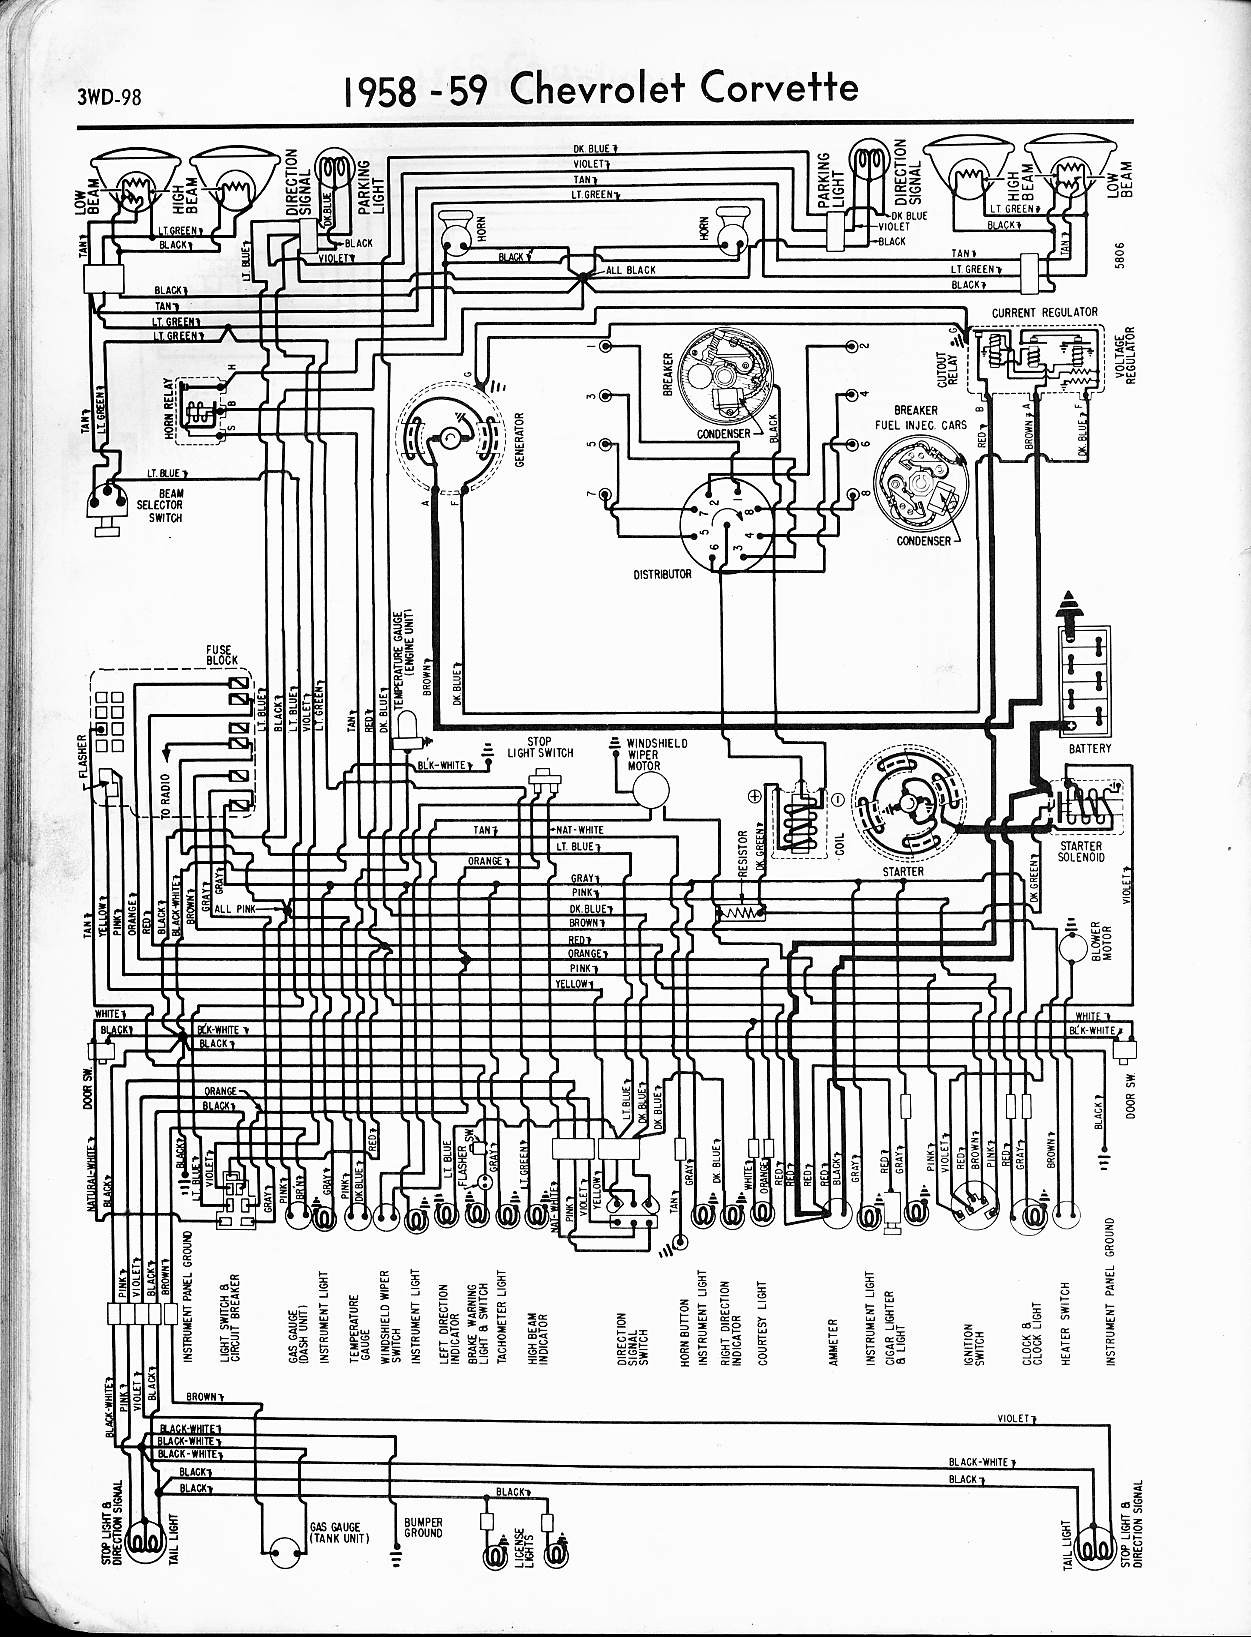 Chevy truck wiring diagram source ozbet co 1958 corvette